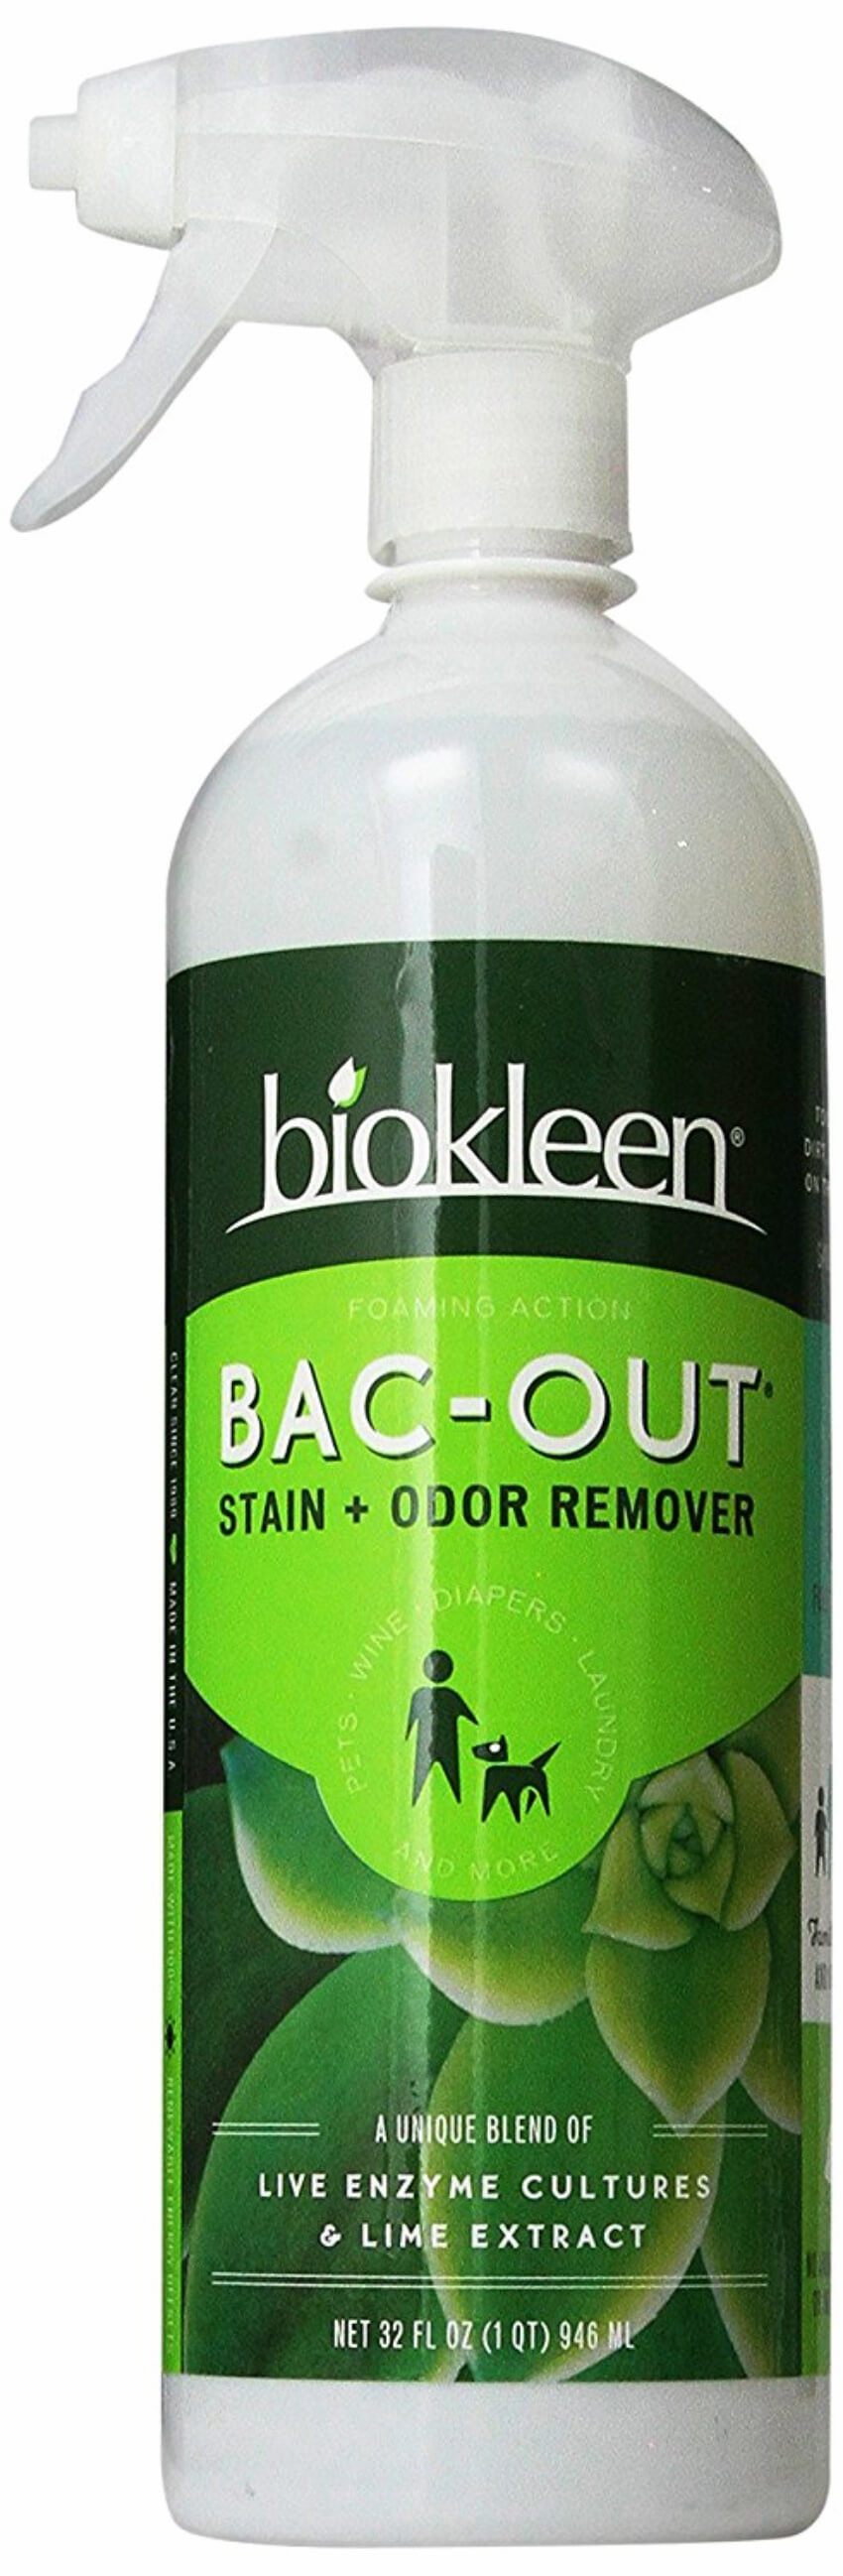 A stain and odor remover for when your pets leave their mark on the carpet.